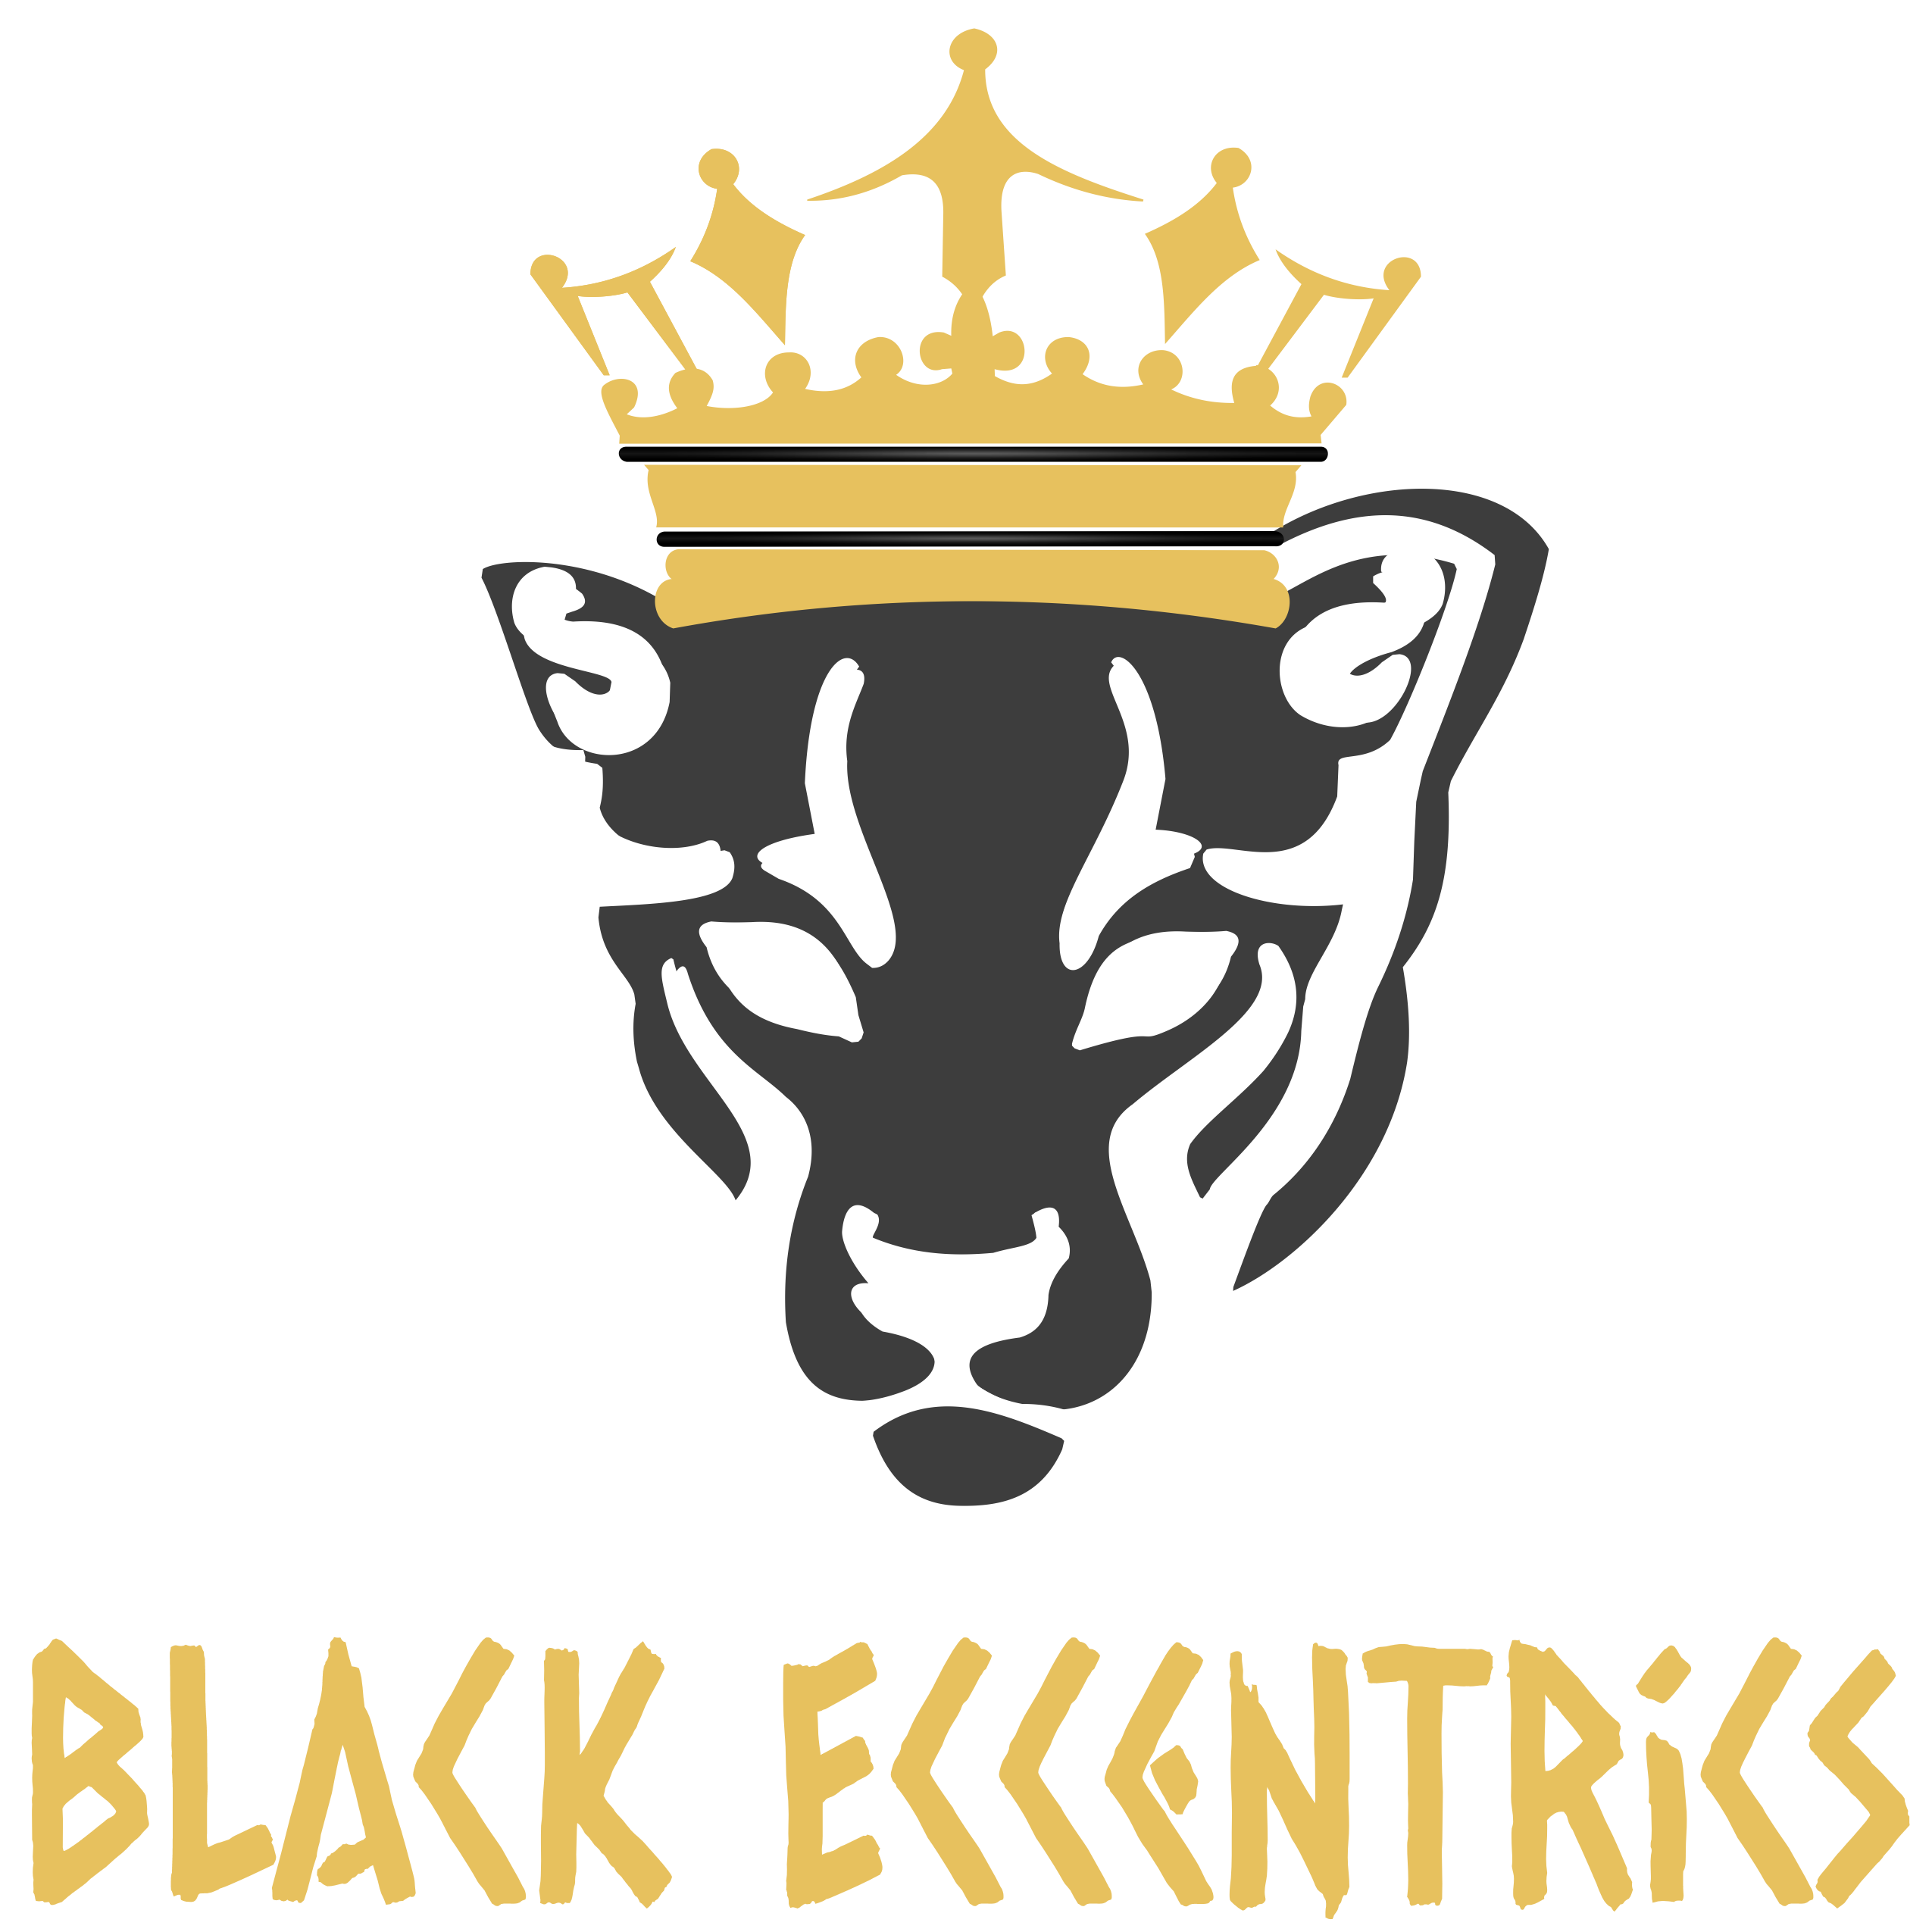 Black Eccentrics